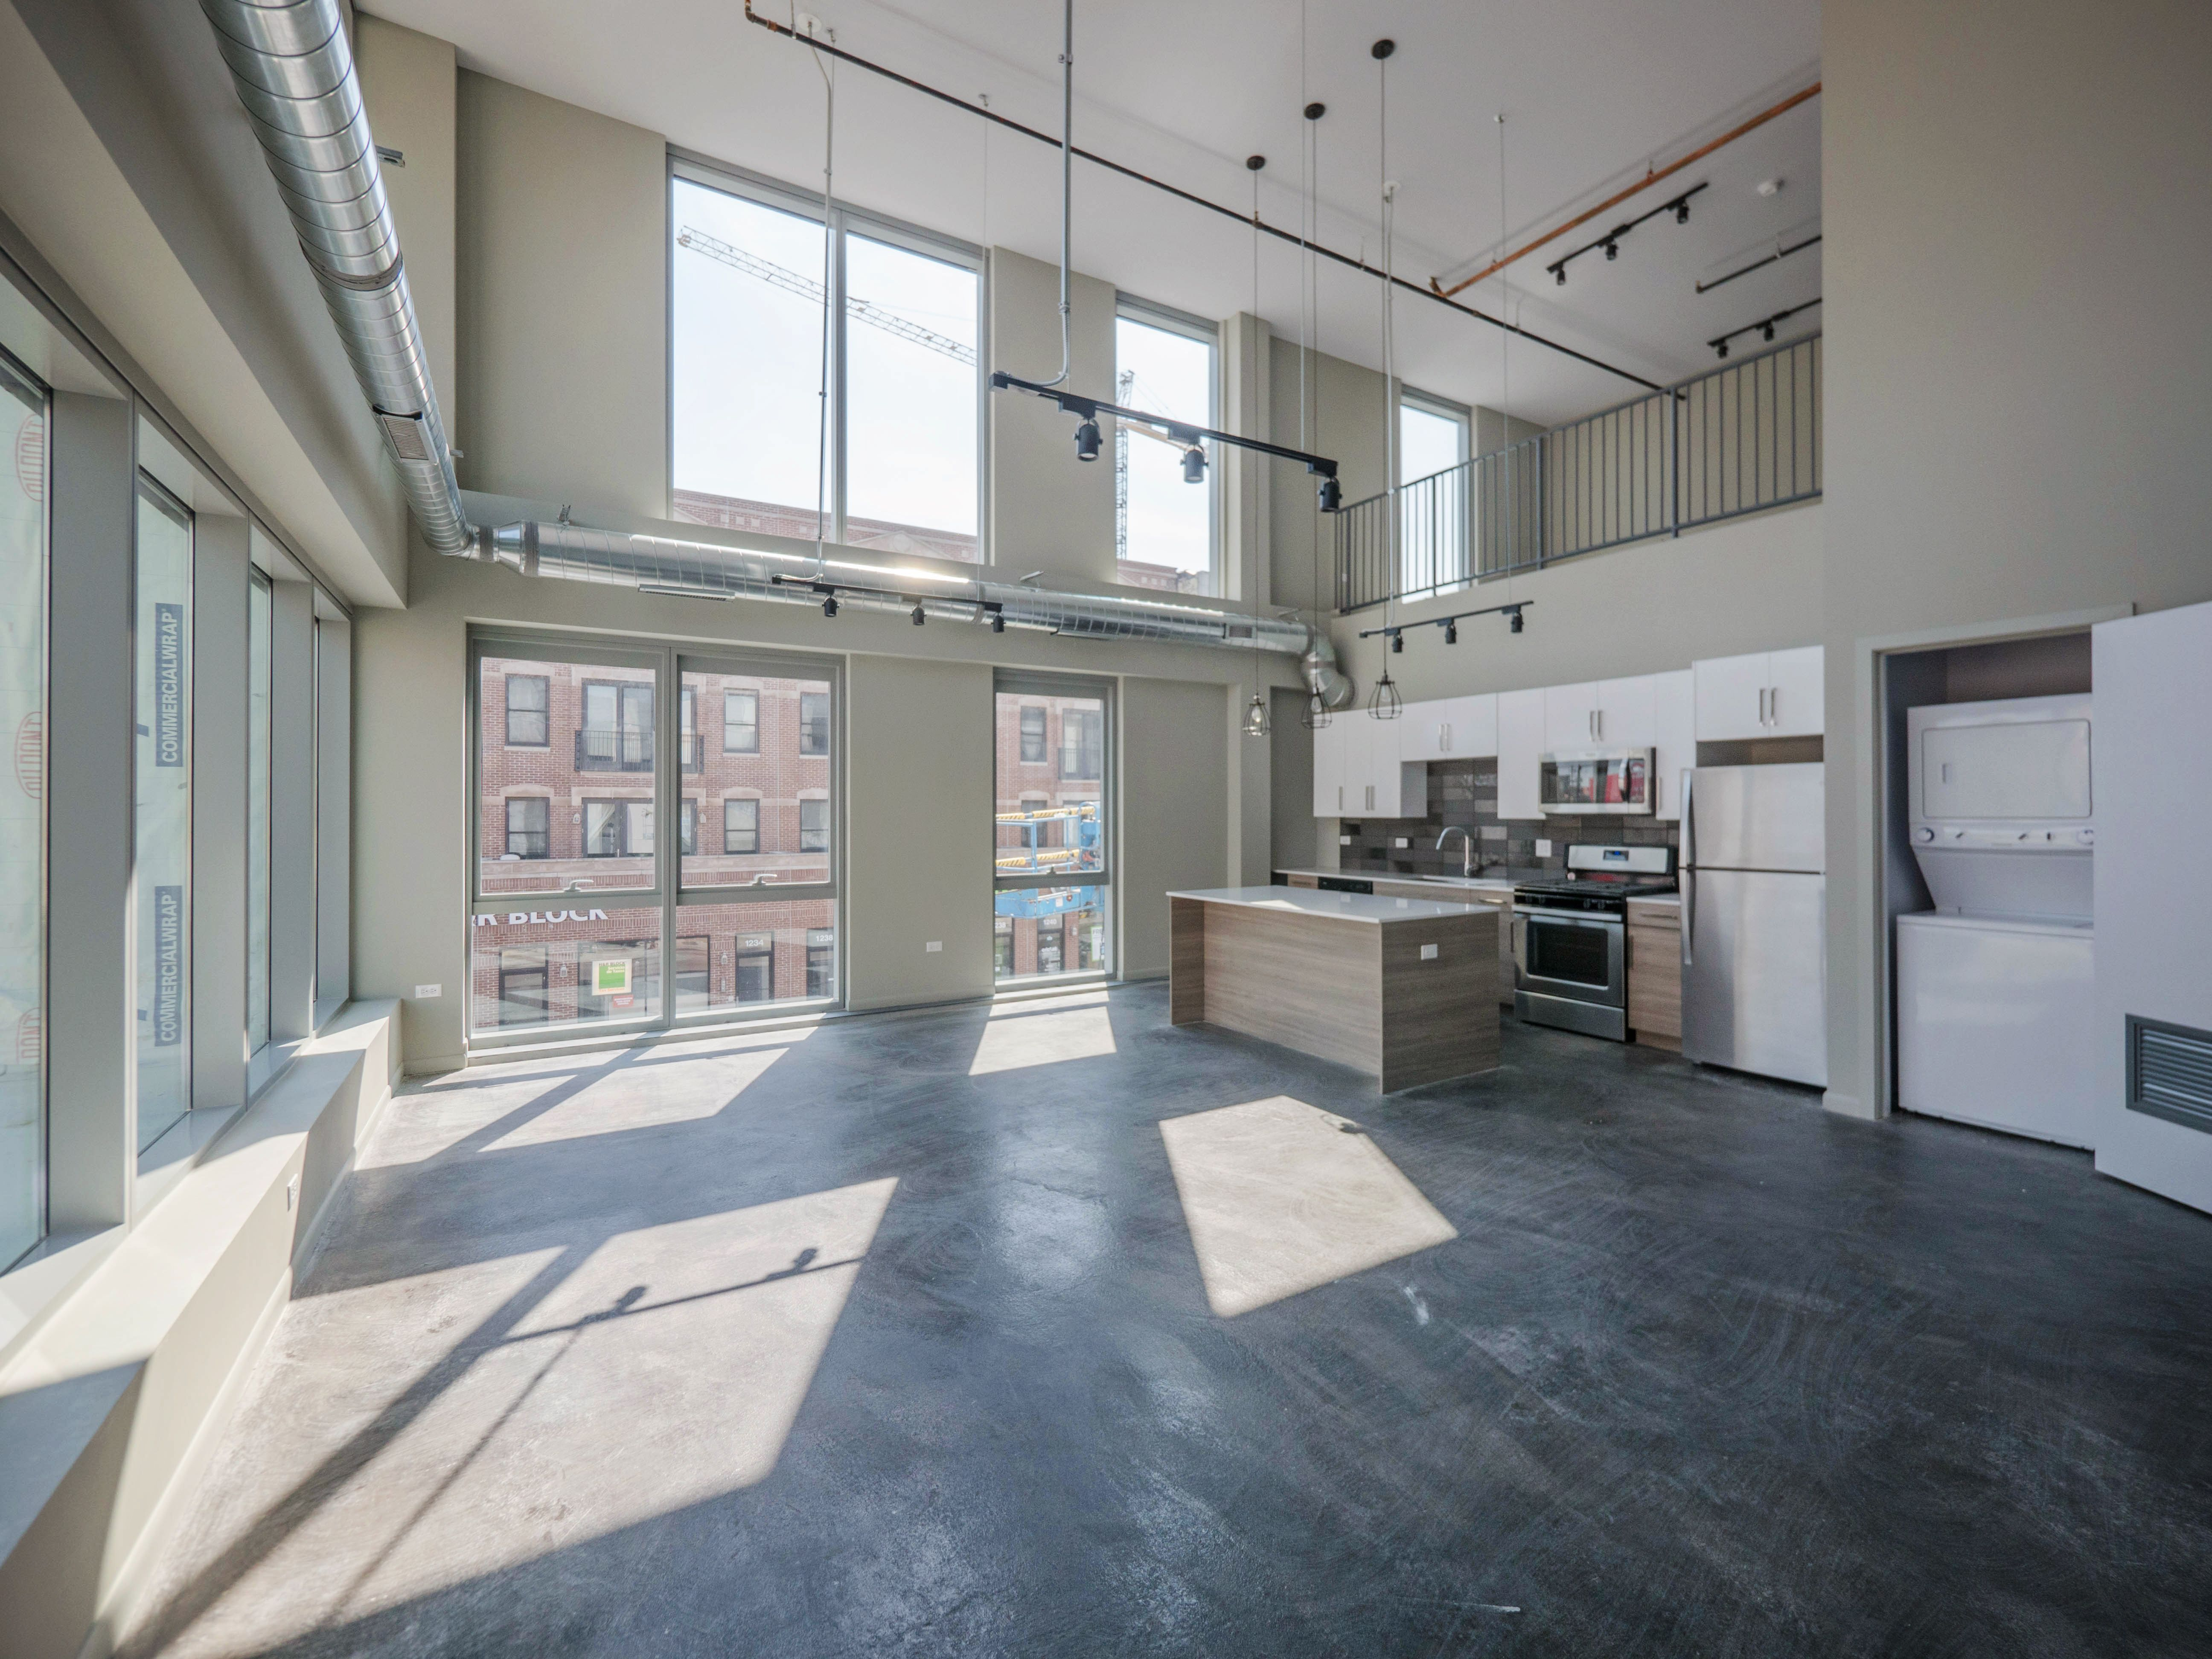 These Brand New Chicago Loft Apartment In Wicker Park Is Loaded With Unique Features Loft Style Apartments Loft Apartment Floor Plan Loft Apartment Industrial